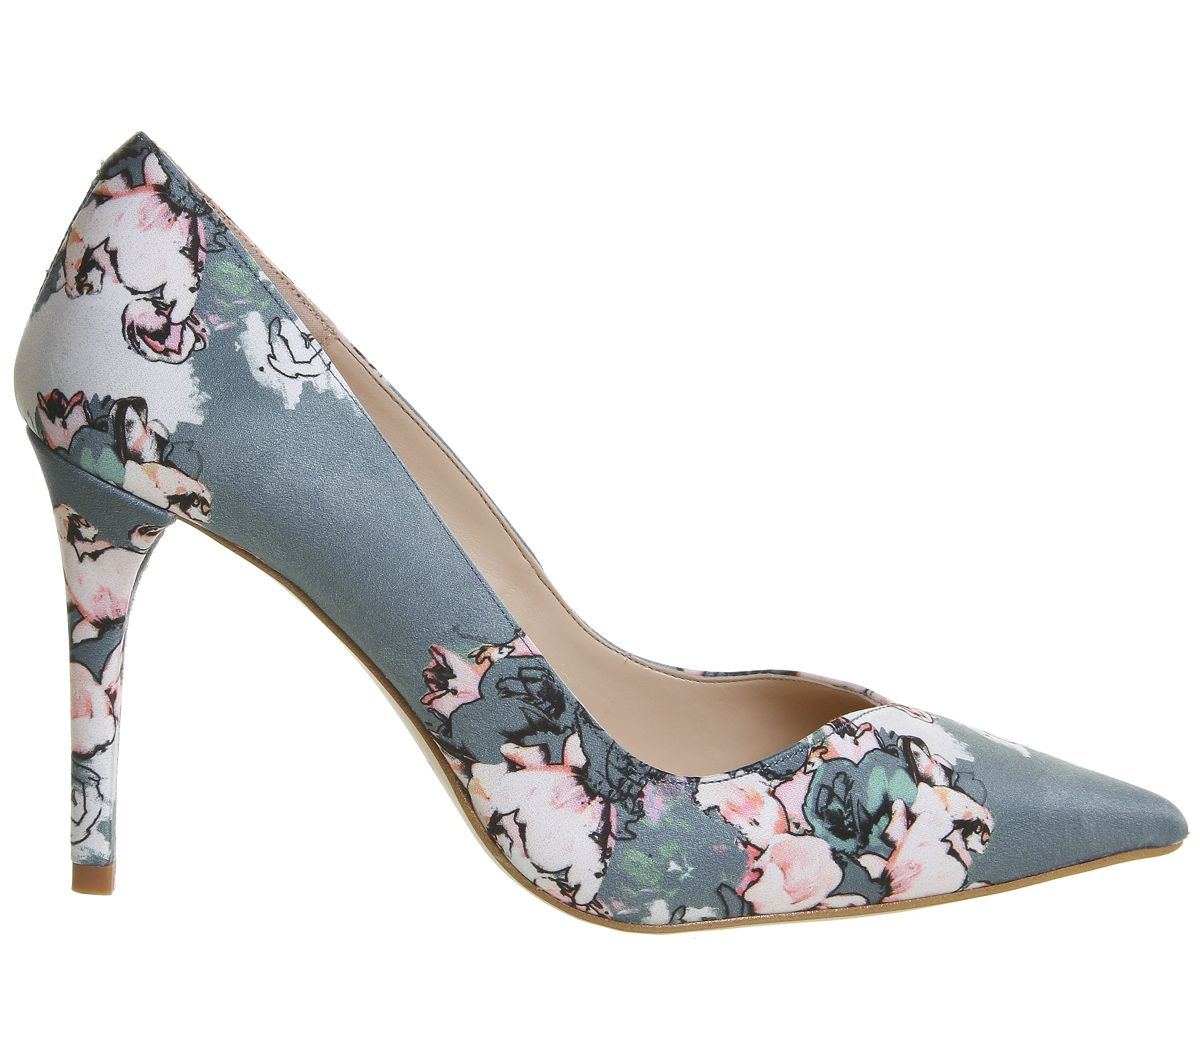 9e2b81dda2 Womens Office Hold Up Sweetheart Point Courts Floral Satin Heels | eBay